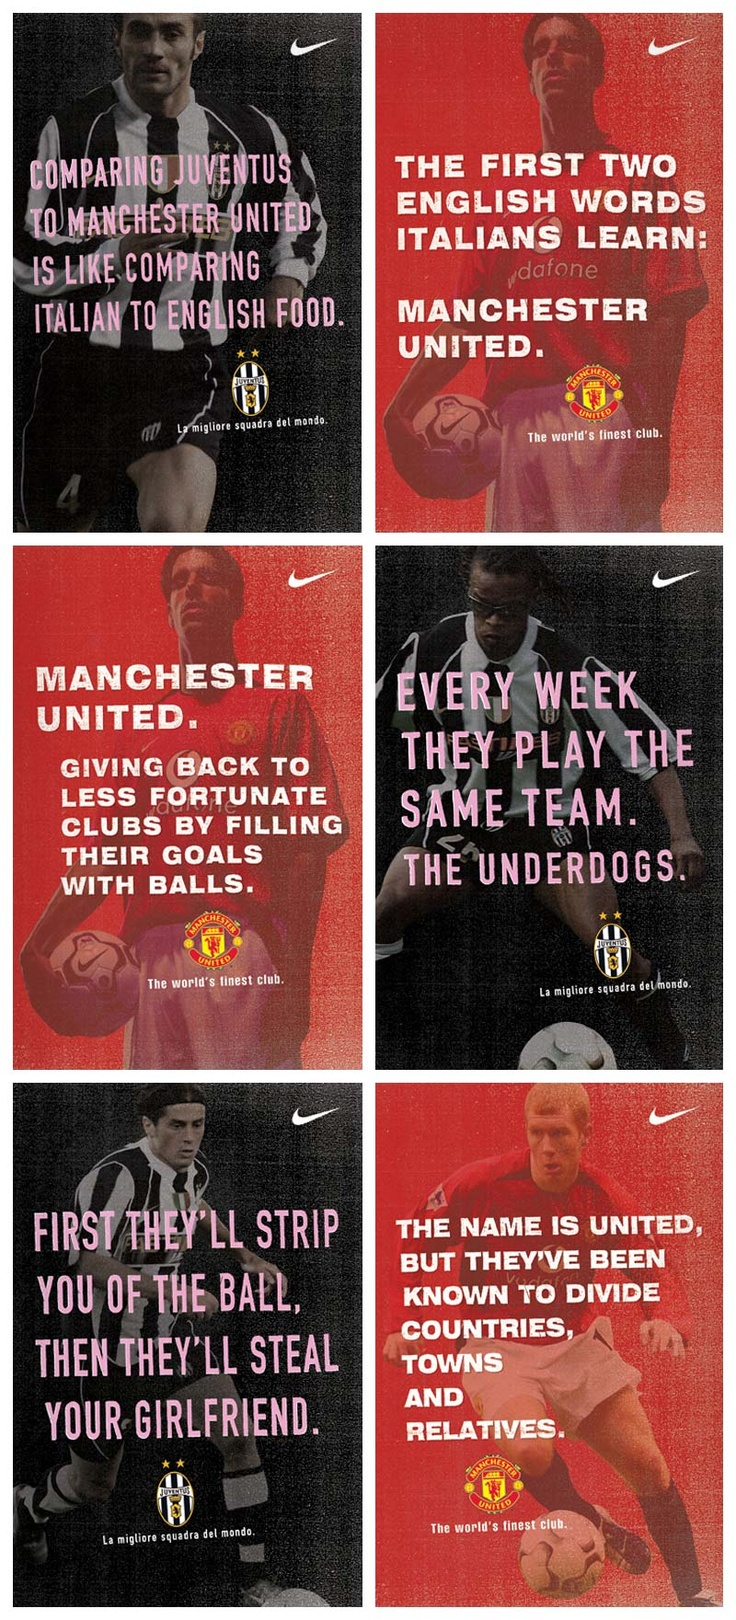 Nike posters by #Creature in Seattle/UK